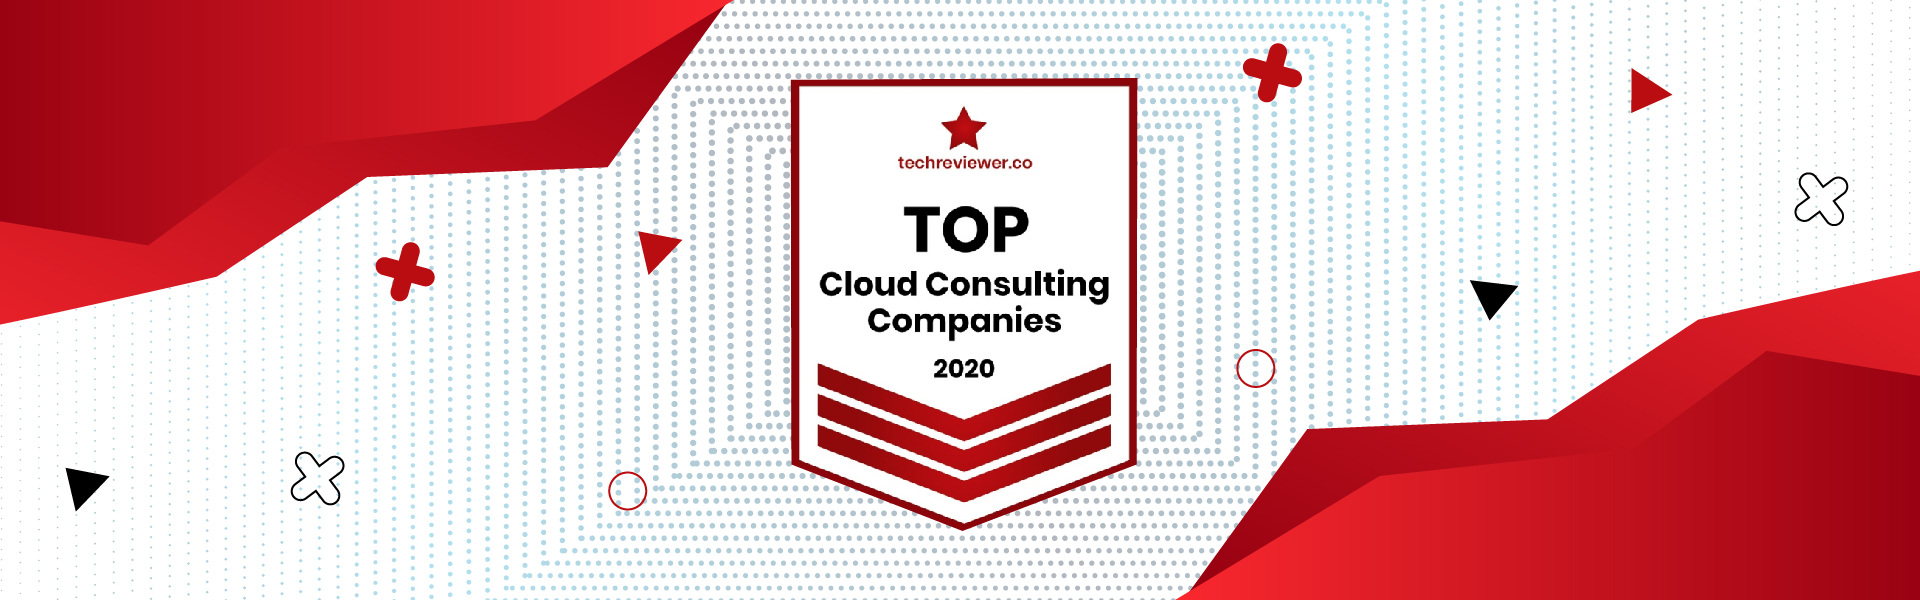 Top Cloud Consulting Companies from TechReviewer — Emerline Is in the List